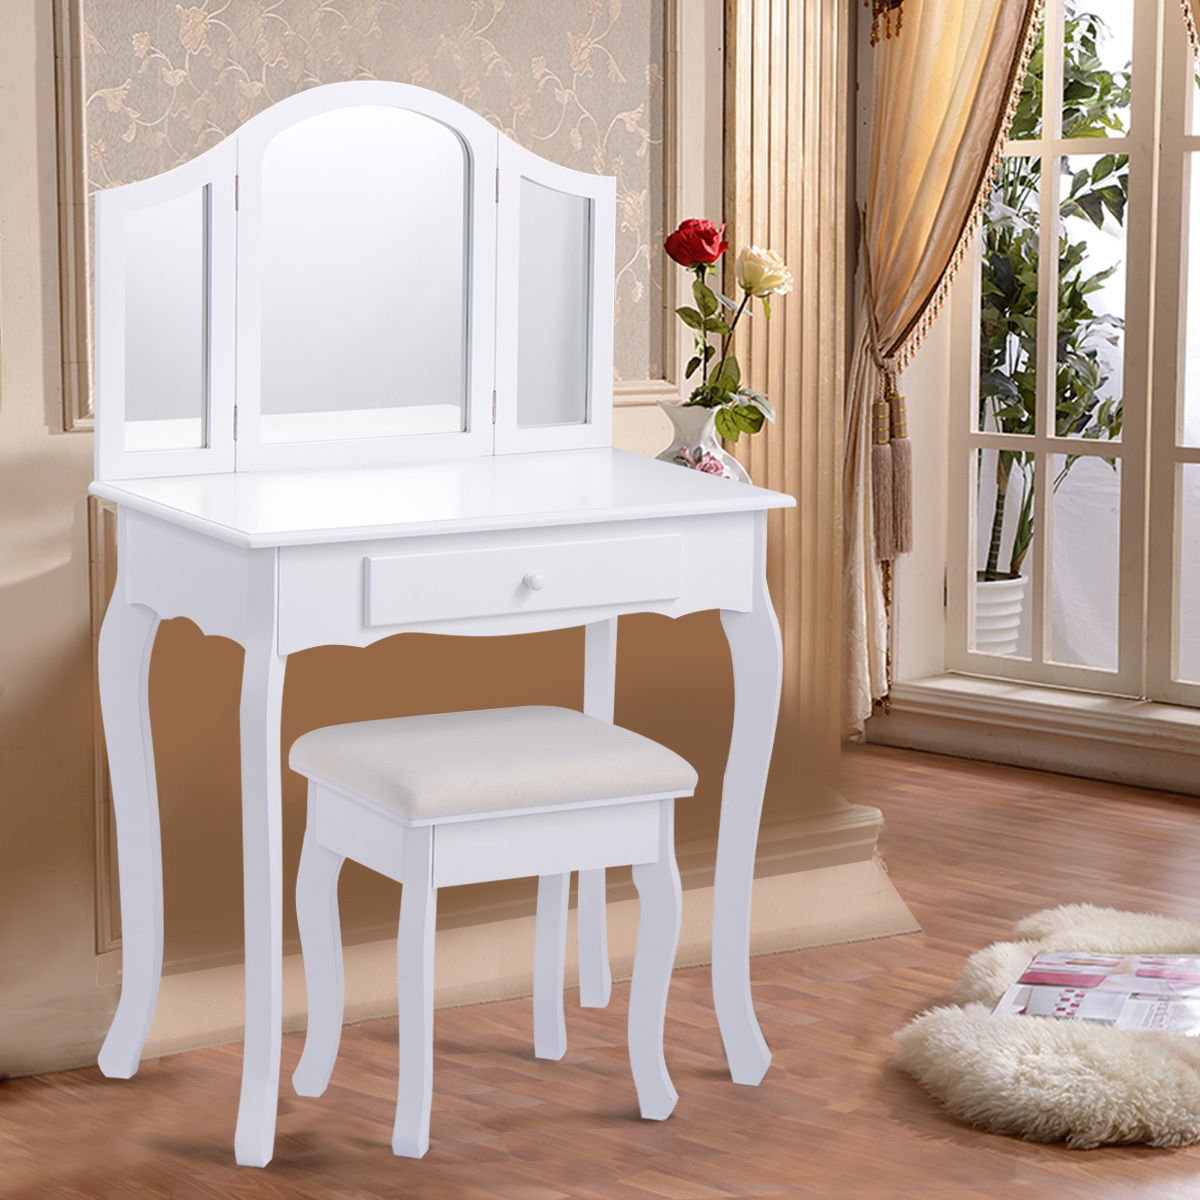 Costway White Tri Folding Mirror Vanity Makeup Table Set Bedroom W Stool & Drawers by Costway